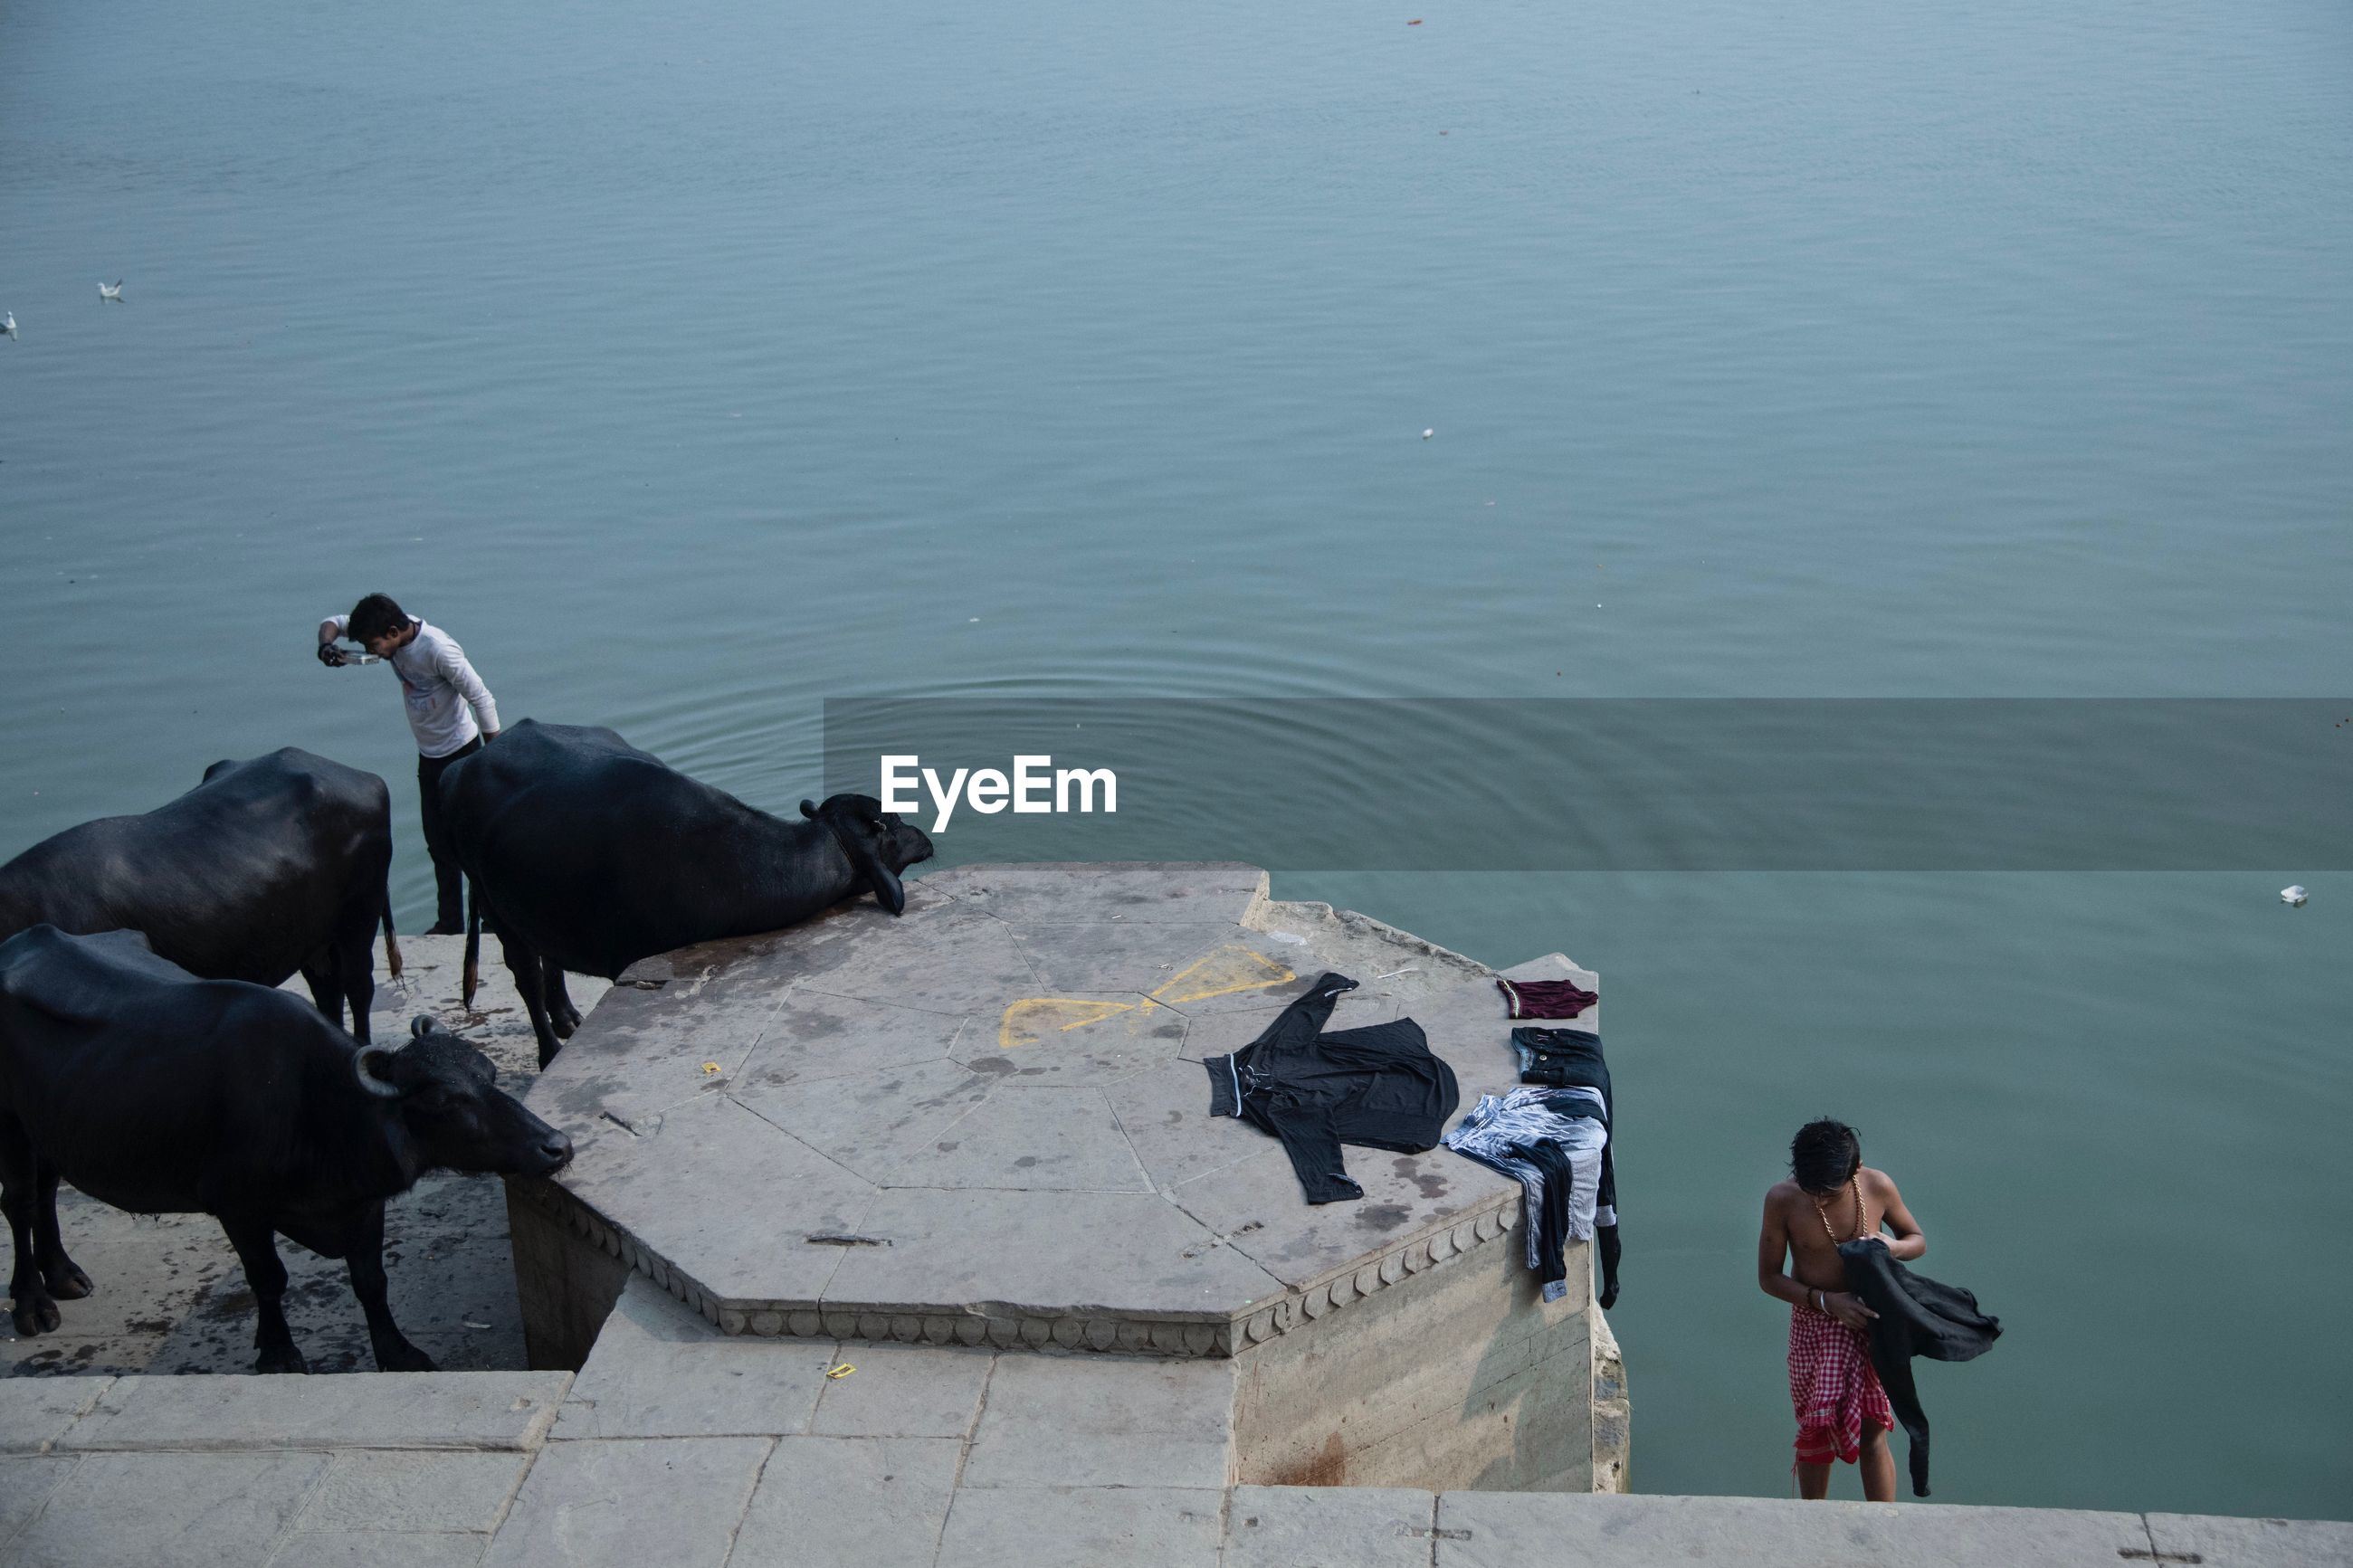 HIGH ANGLE VIEW OF PEOPLE ON SEA BY SHORE